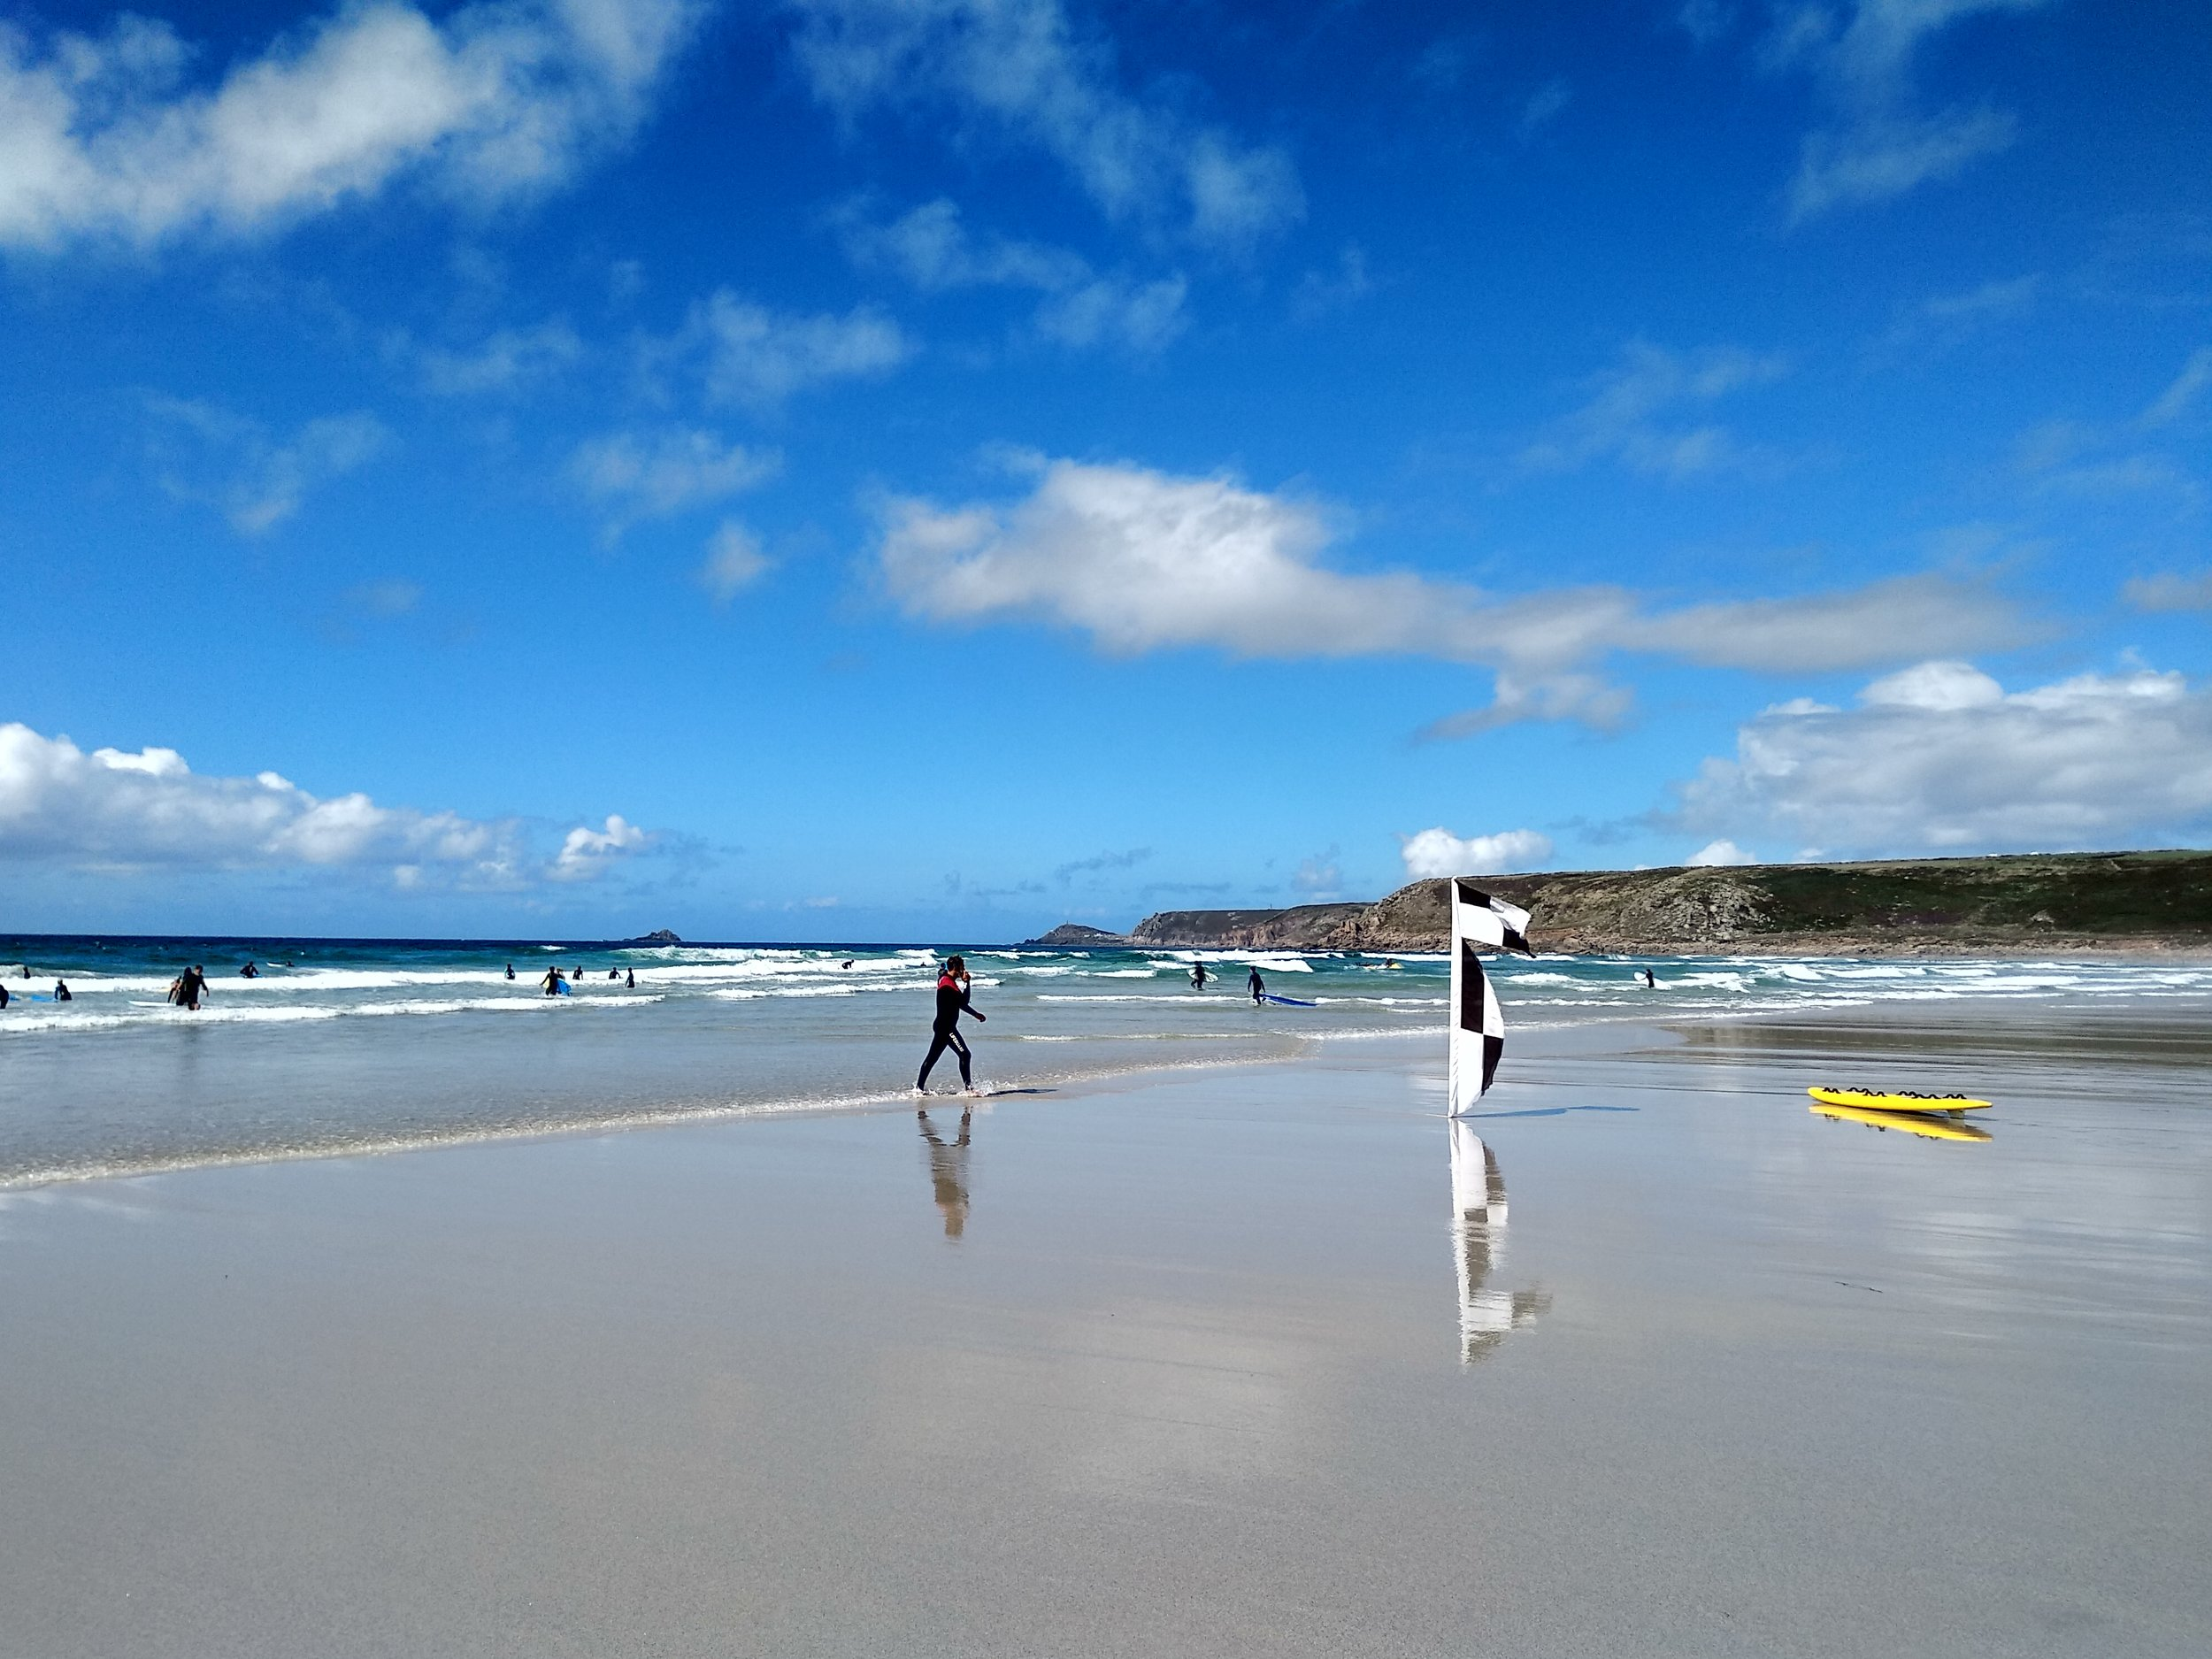 A beach day at Sennen Cove, the surf capital of the UK.